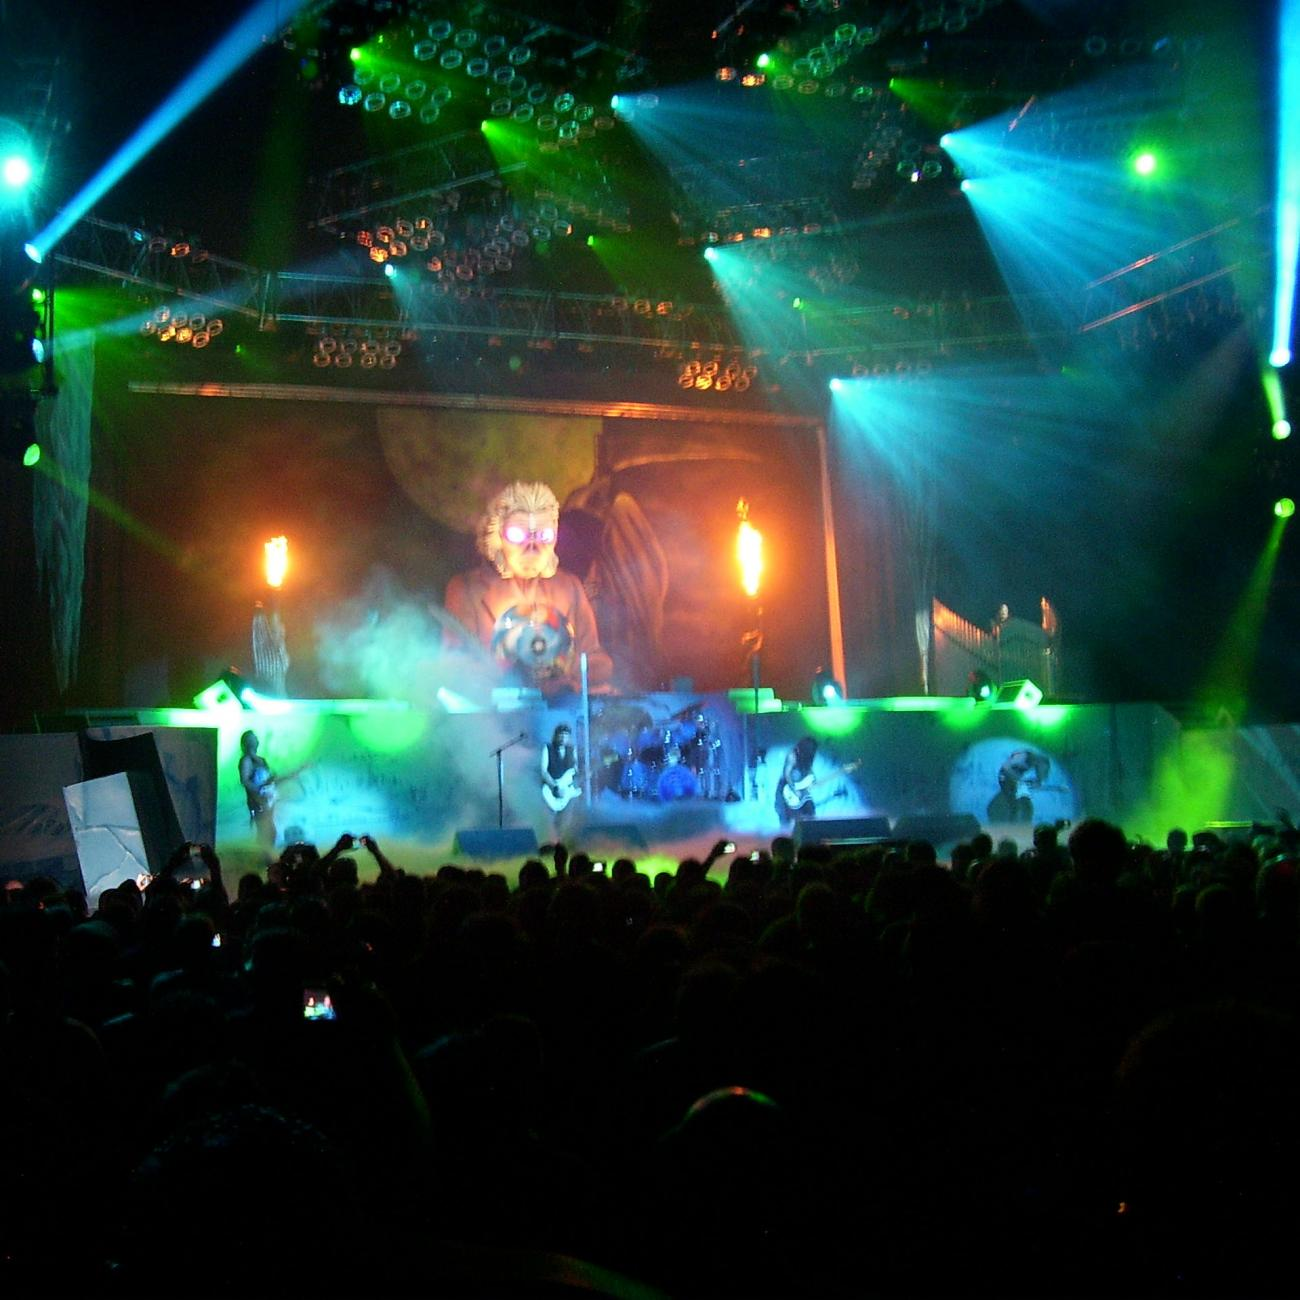 Seventh Son:Full Stage by adorety